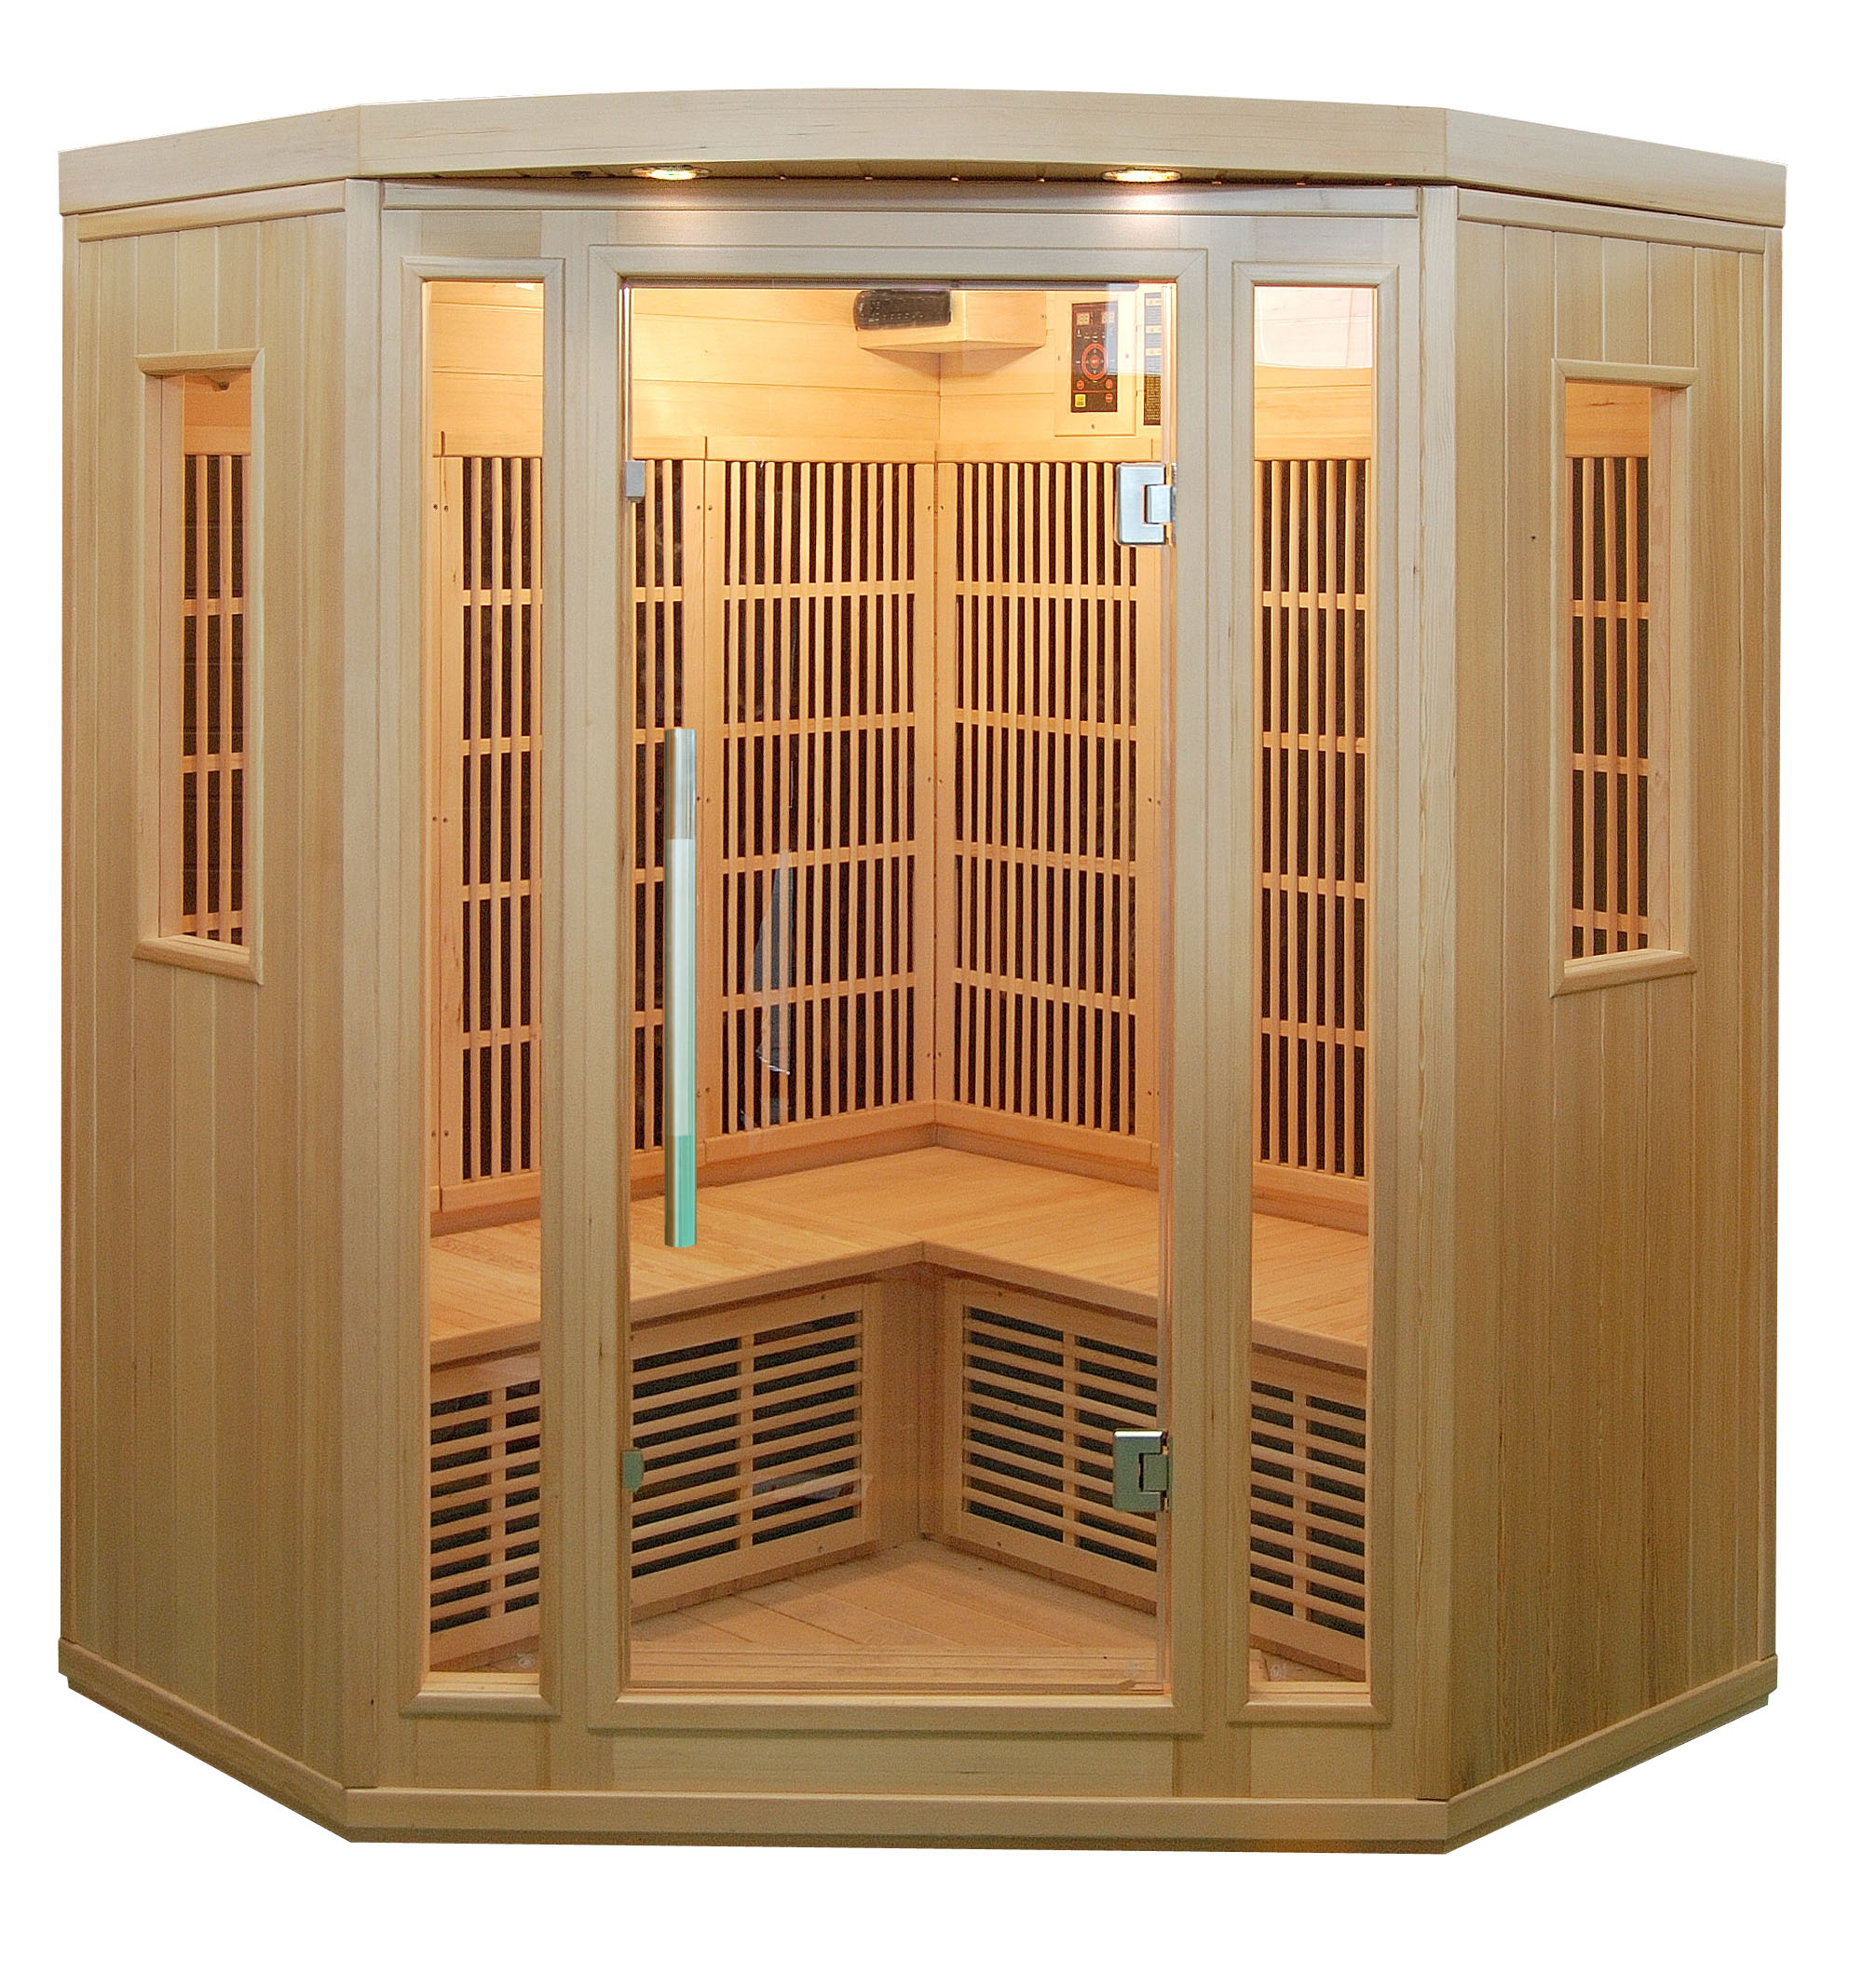 Piscinex sauna duo sauna infrarouge quatuor 3 4 places - Sauna infrarouge 4 places ...